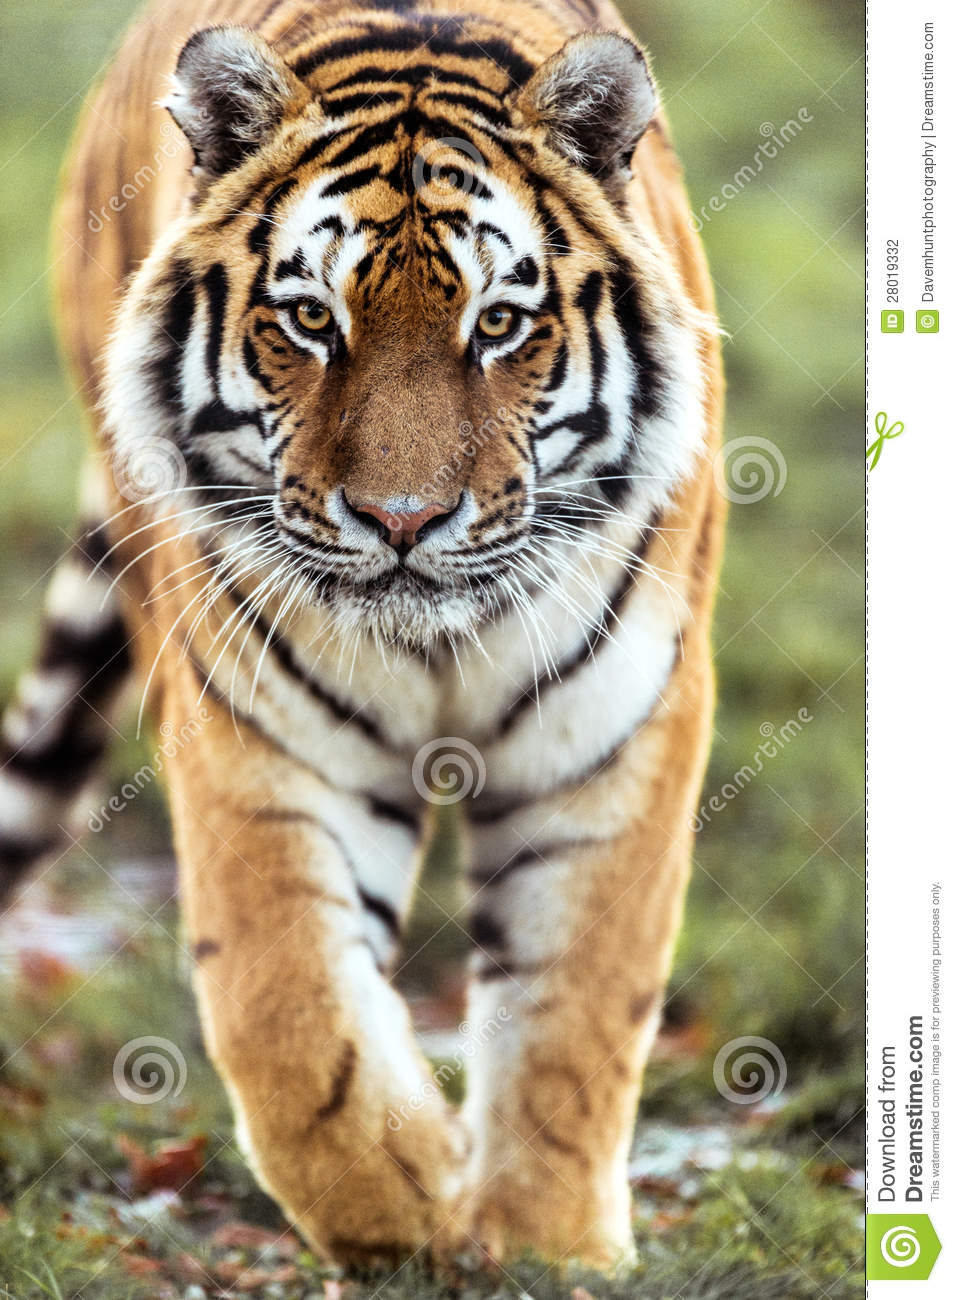 stalking tiger stock photo. image of predator, tigris - 28019332